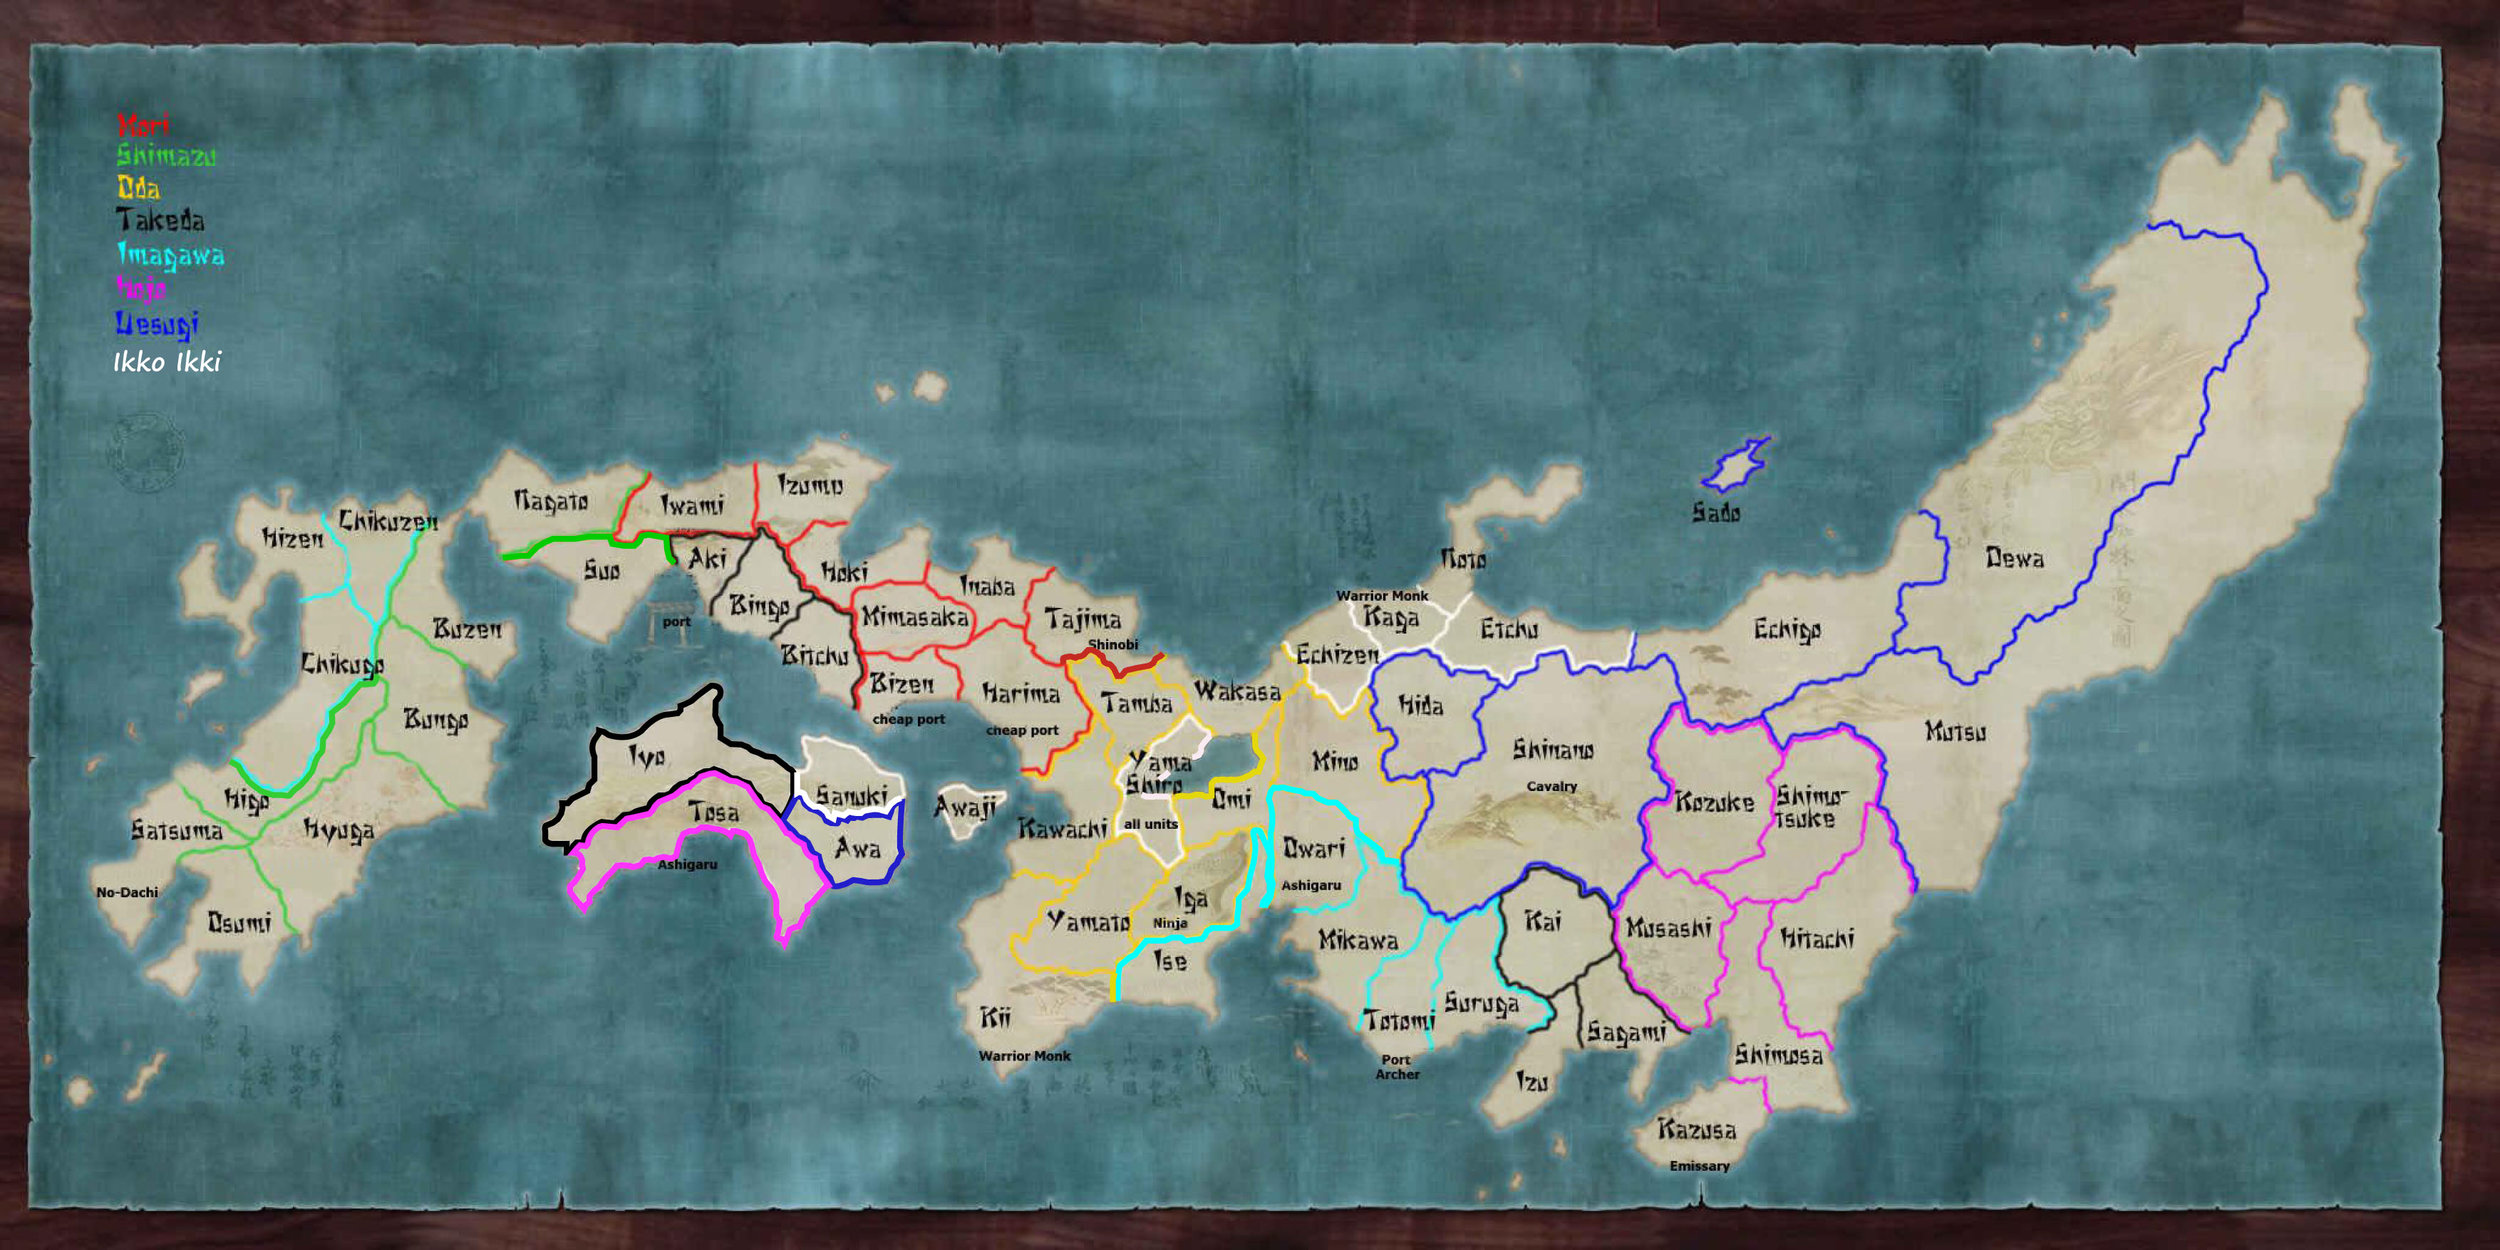 Starting map - DEVELOPED from work done by mizu on forums.totalwar.org